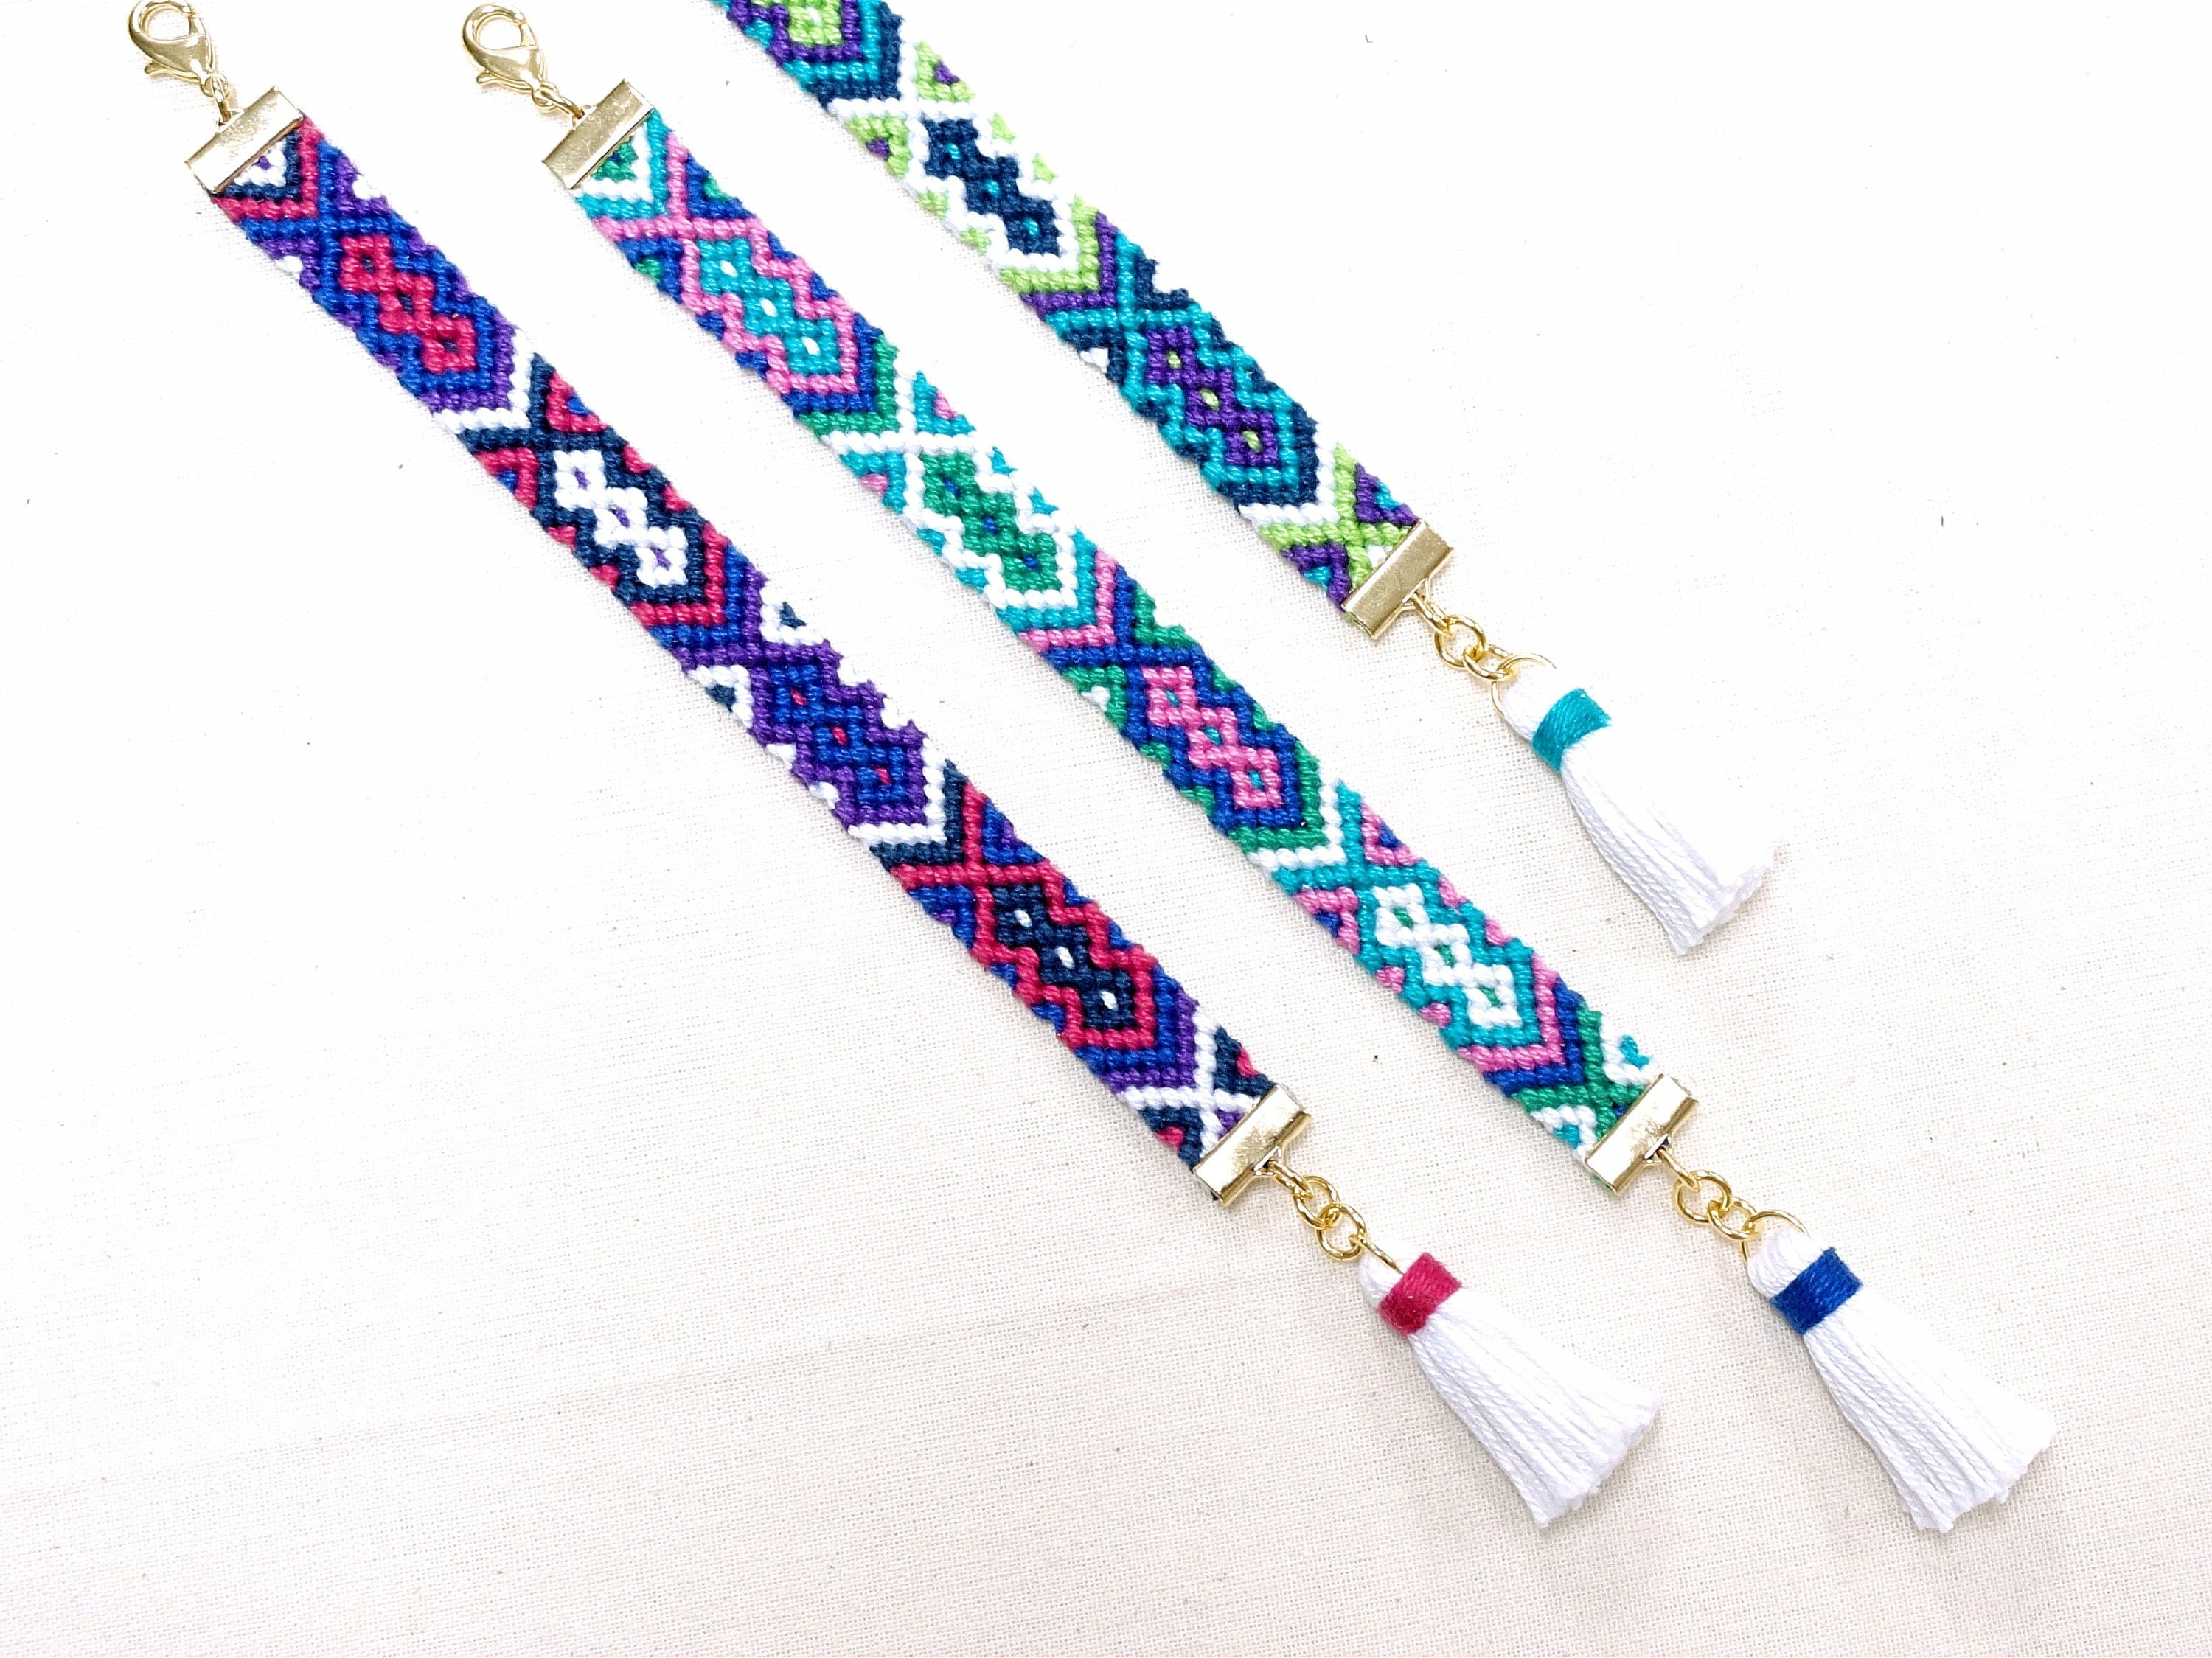 wristbands bracelet promo catalog catering wristband woven group other festival